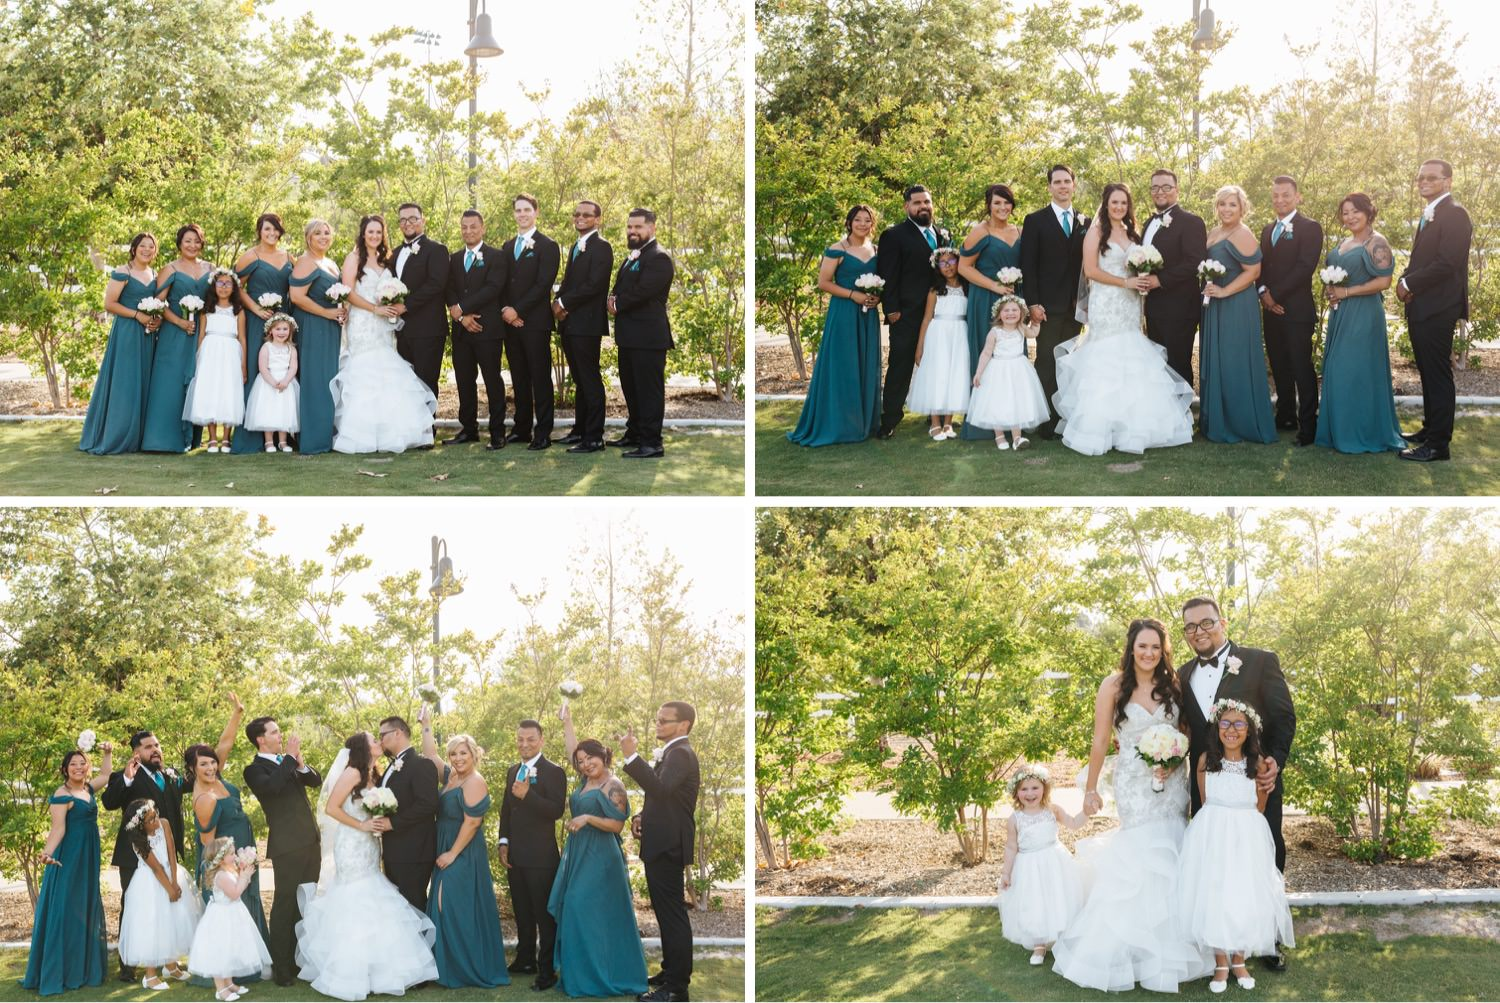 Chino Hills Wedding Photographer - Bridal Party Photos - https://brittneyhannonphotography.com